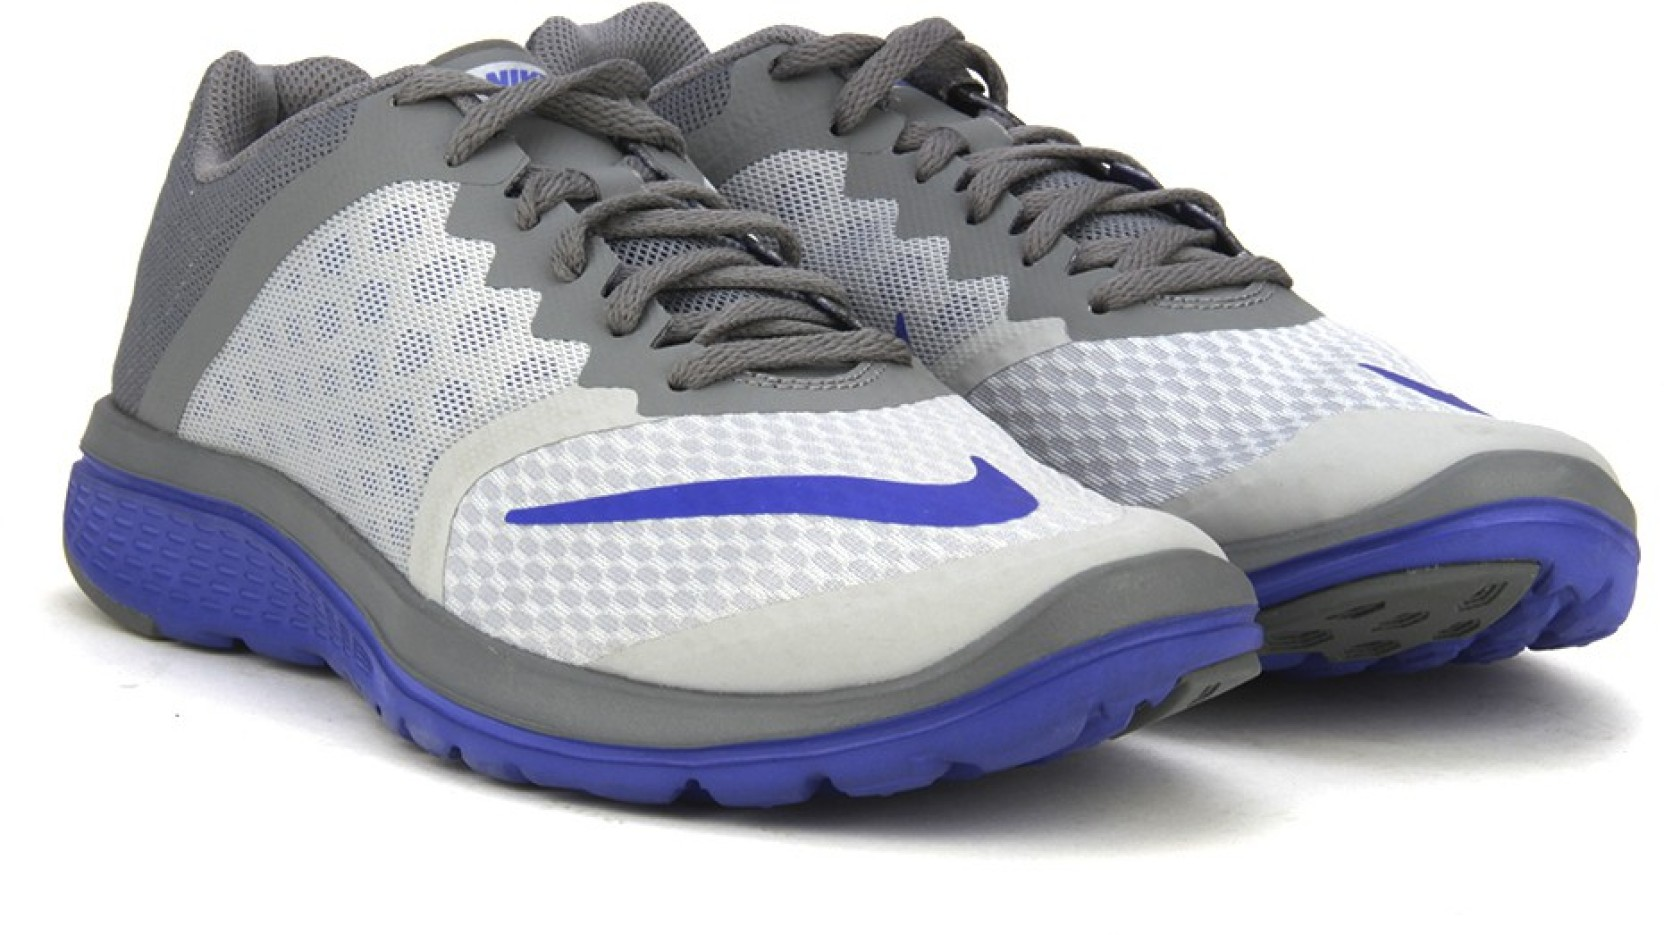 timeless design a3585 bbc3e Nike FS LITE RUN 3 Running Shoes For Men (Grey)